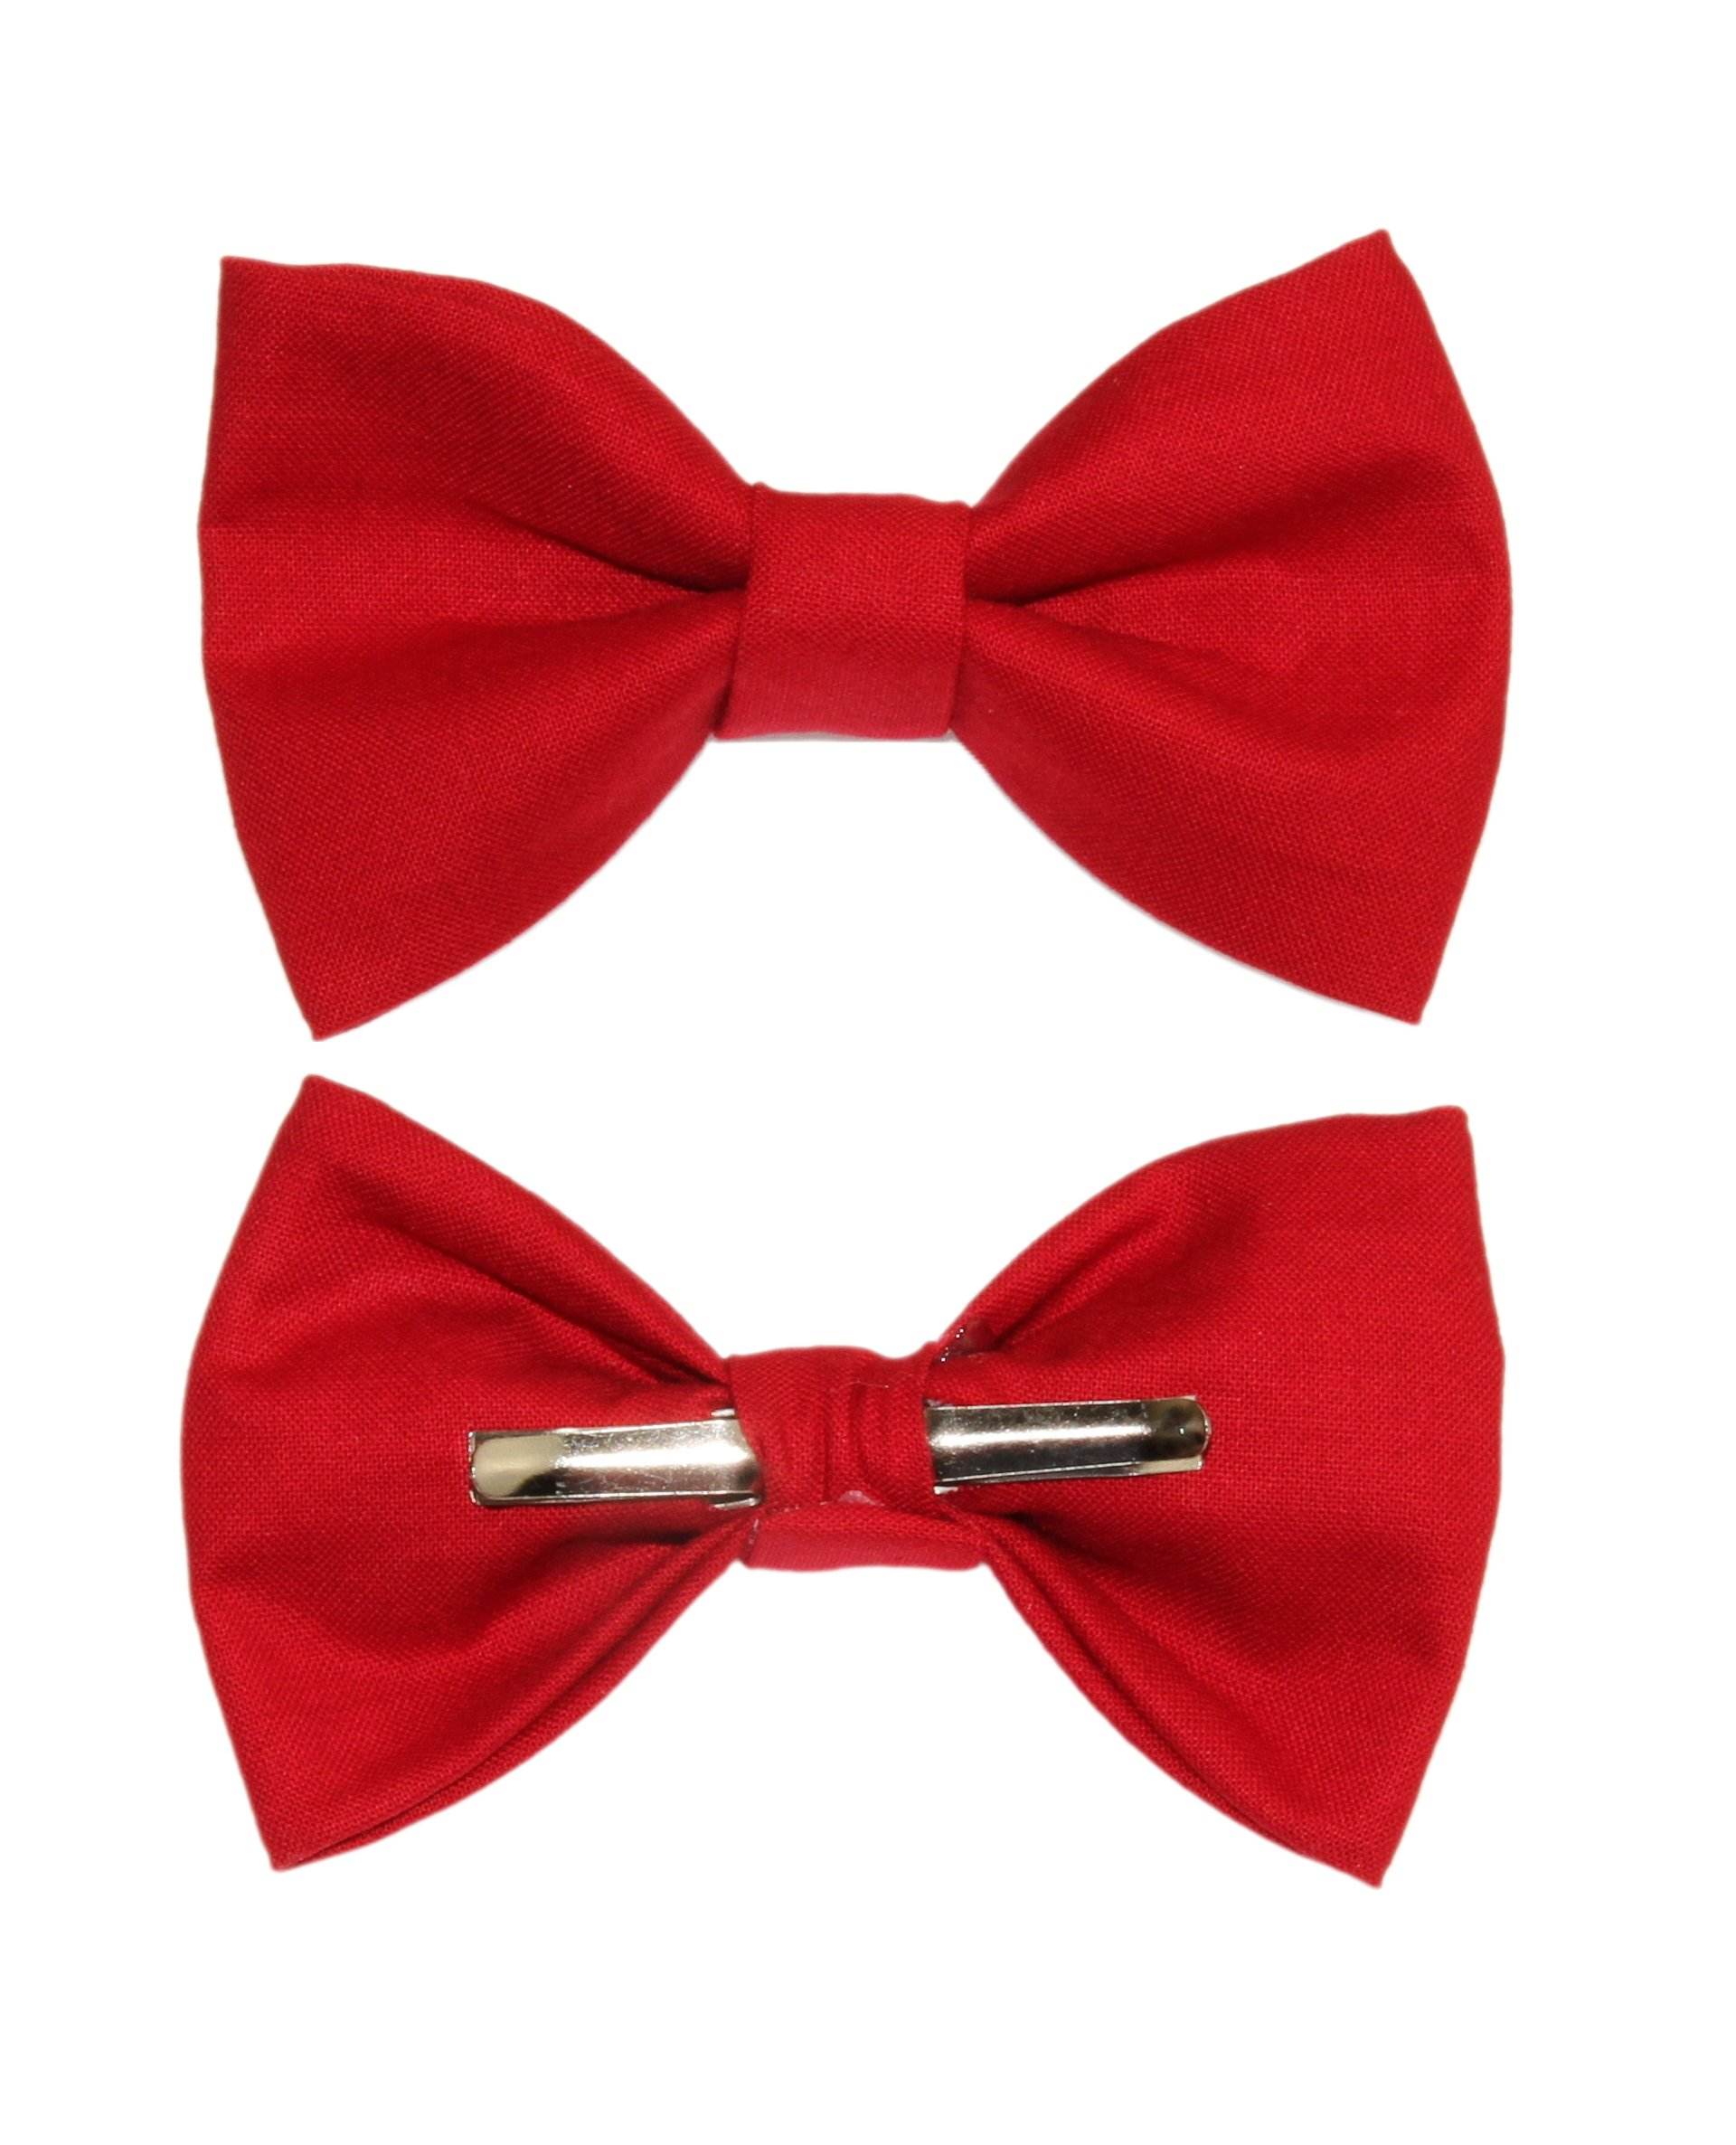 Boys Rich Red Clip On Cotton Bow Tie Bowtie amy2004marie